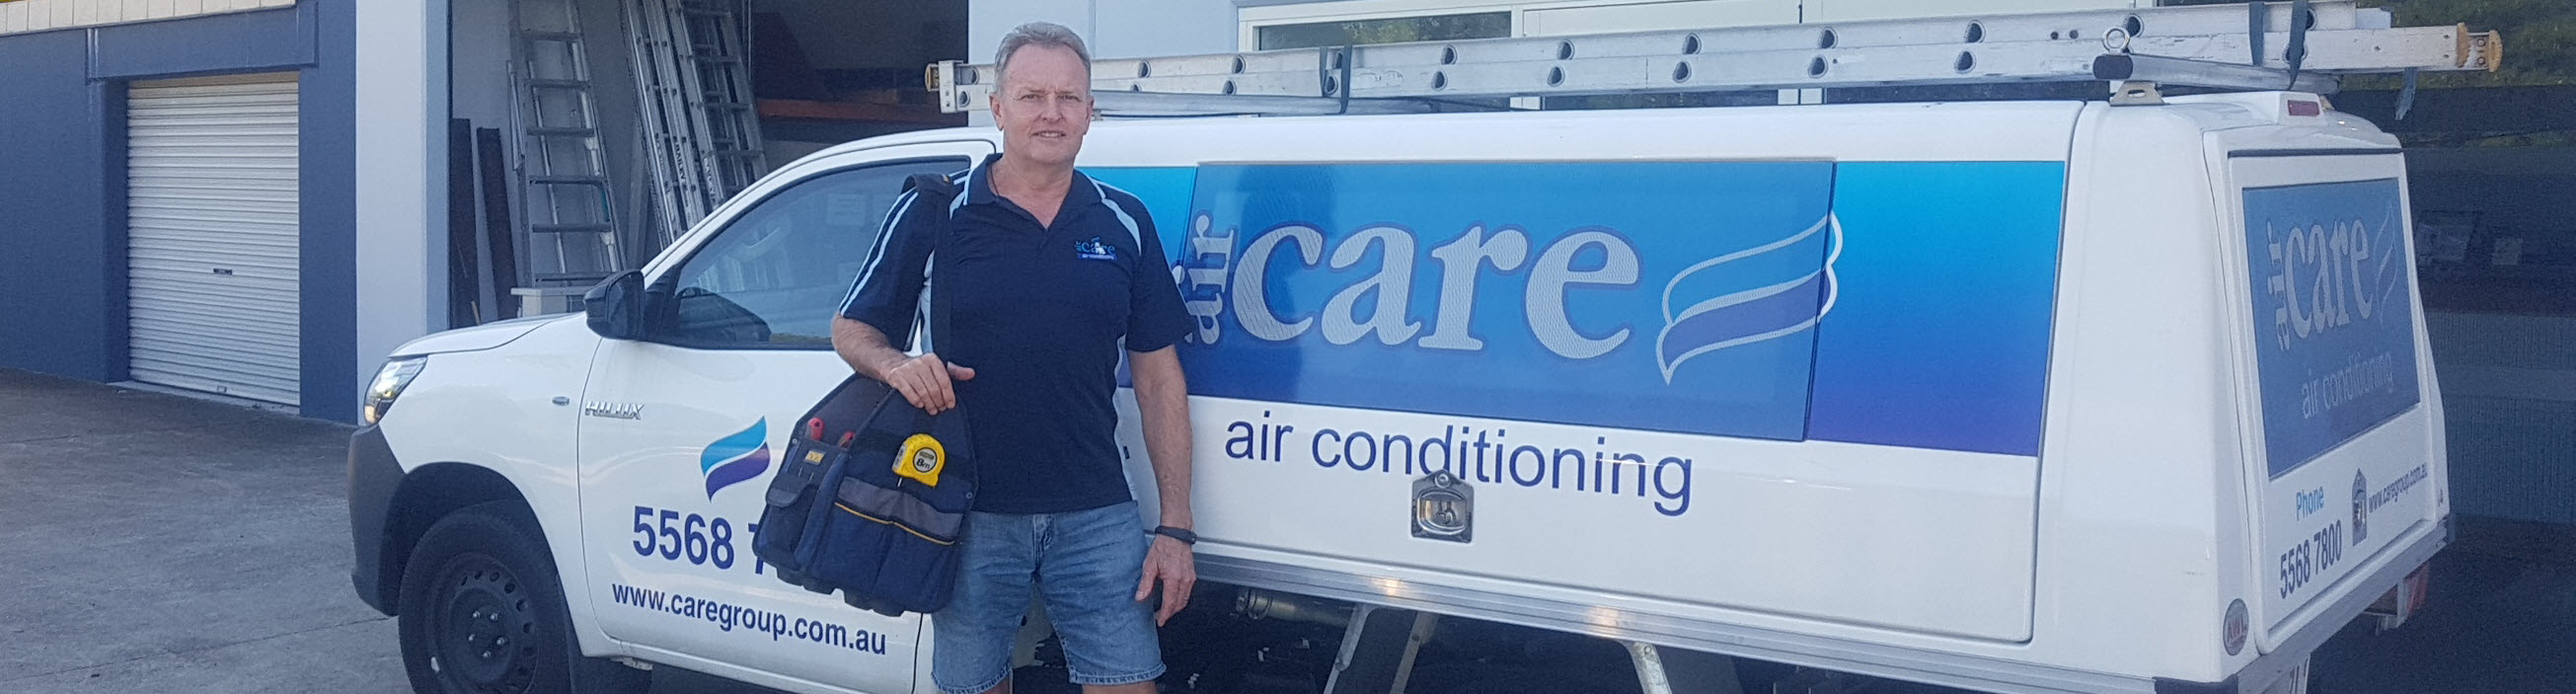 Commercial Air Conditioning Tweed Heads South